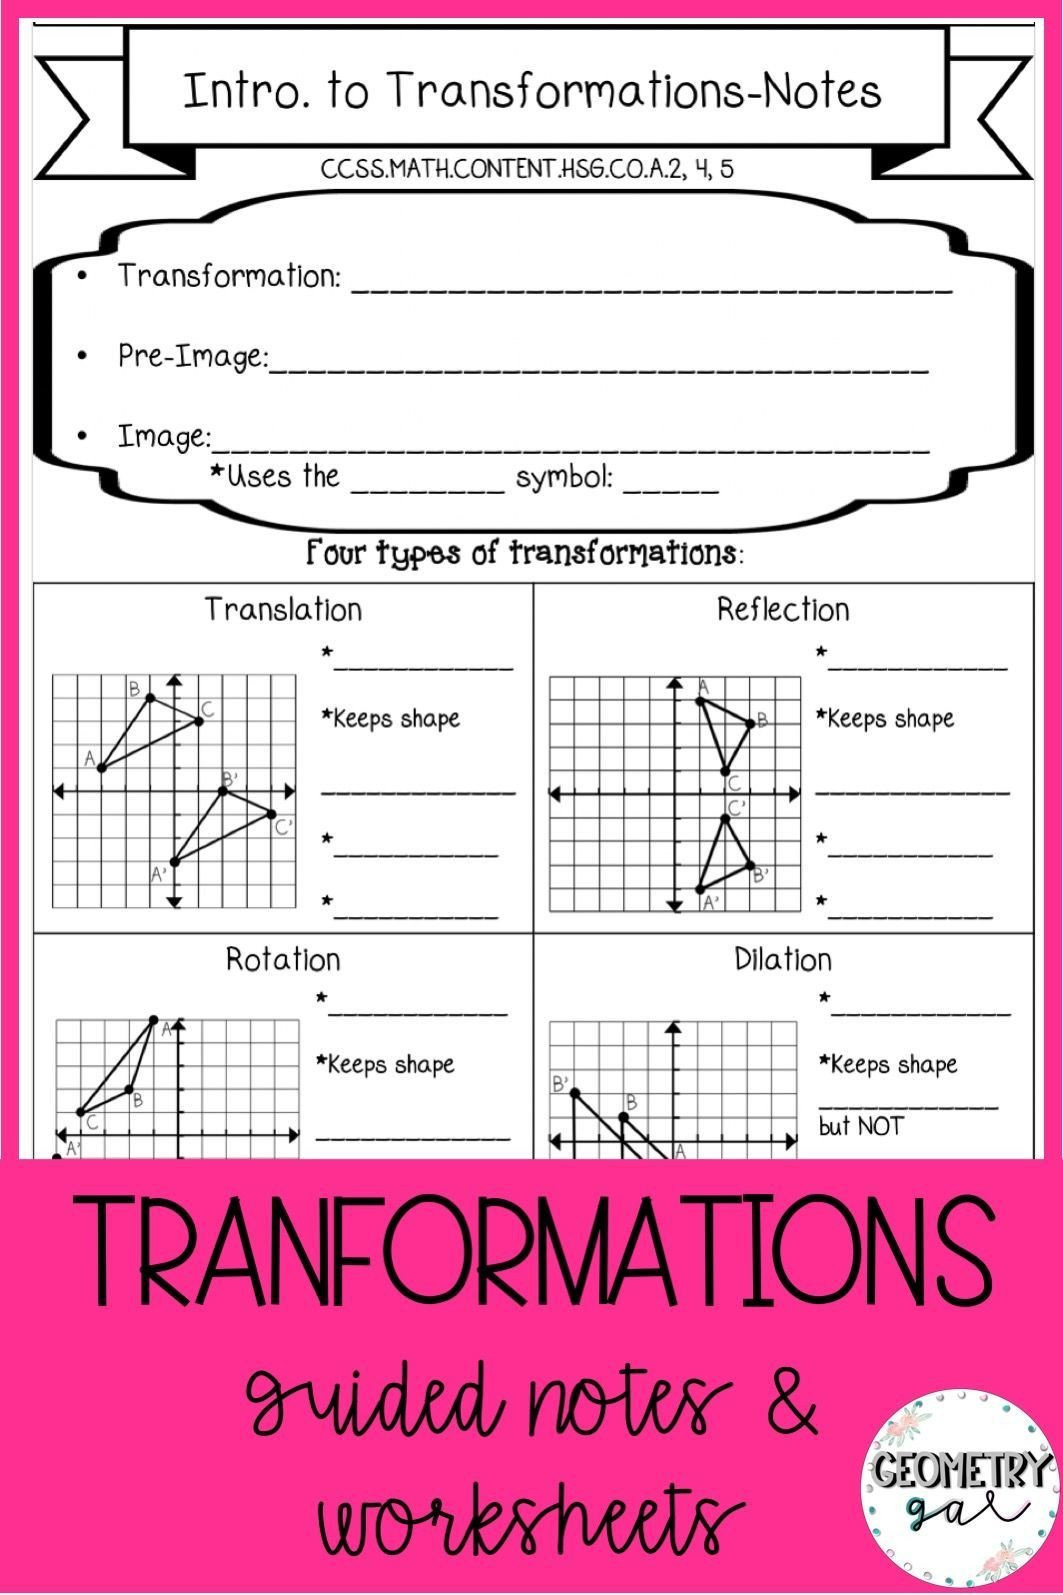 Translations Geometry Worksheets Geometry Transformations Guided Notes and Worksheets topics